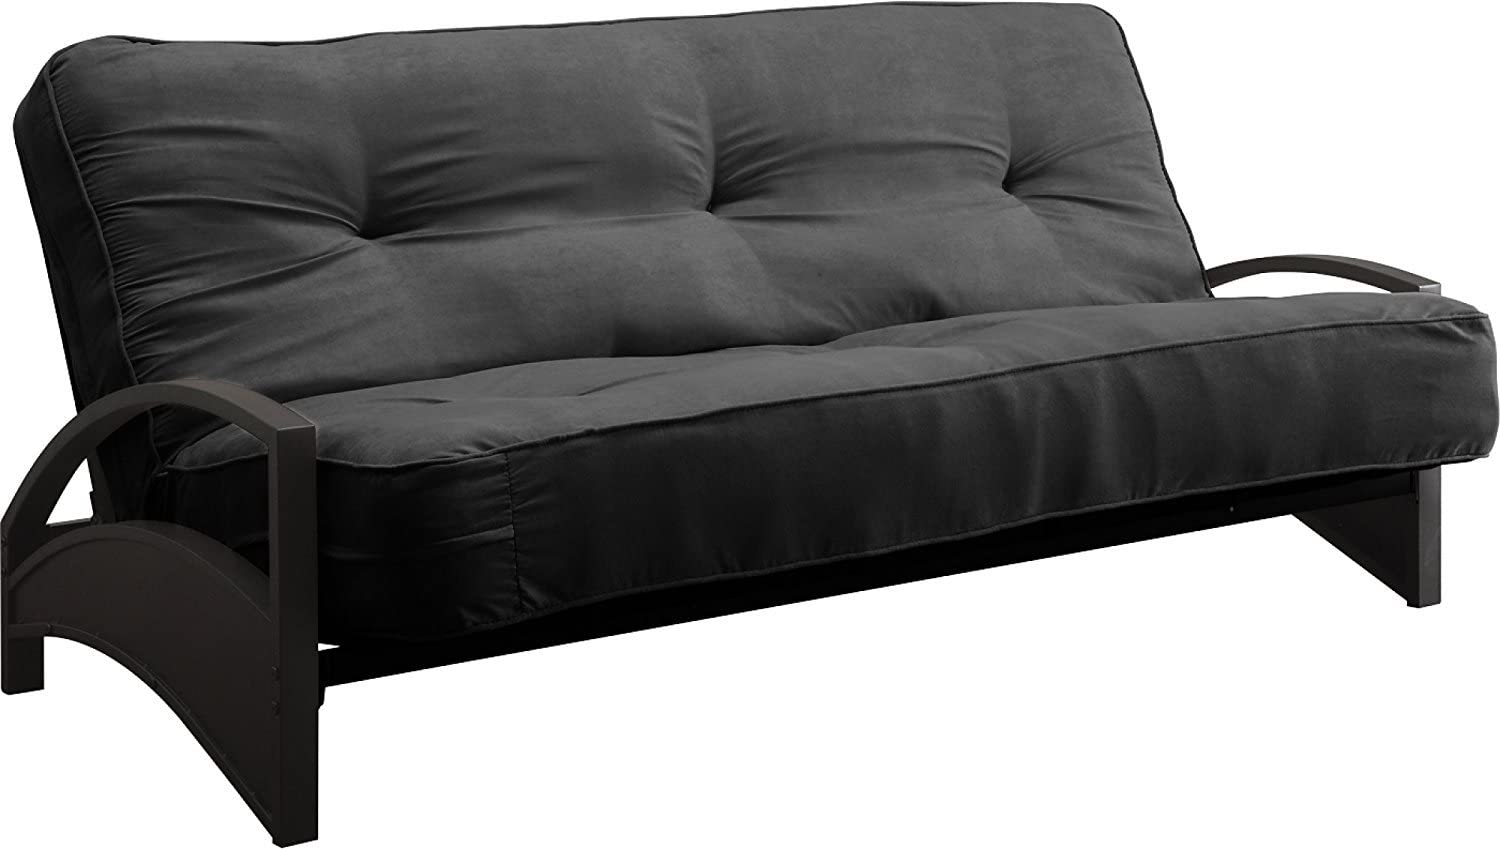 best sellers futon mattresses   amazon    rh   amazon